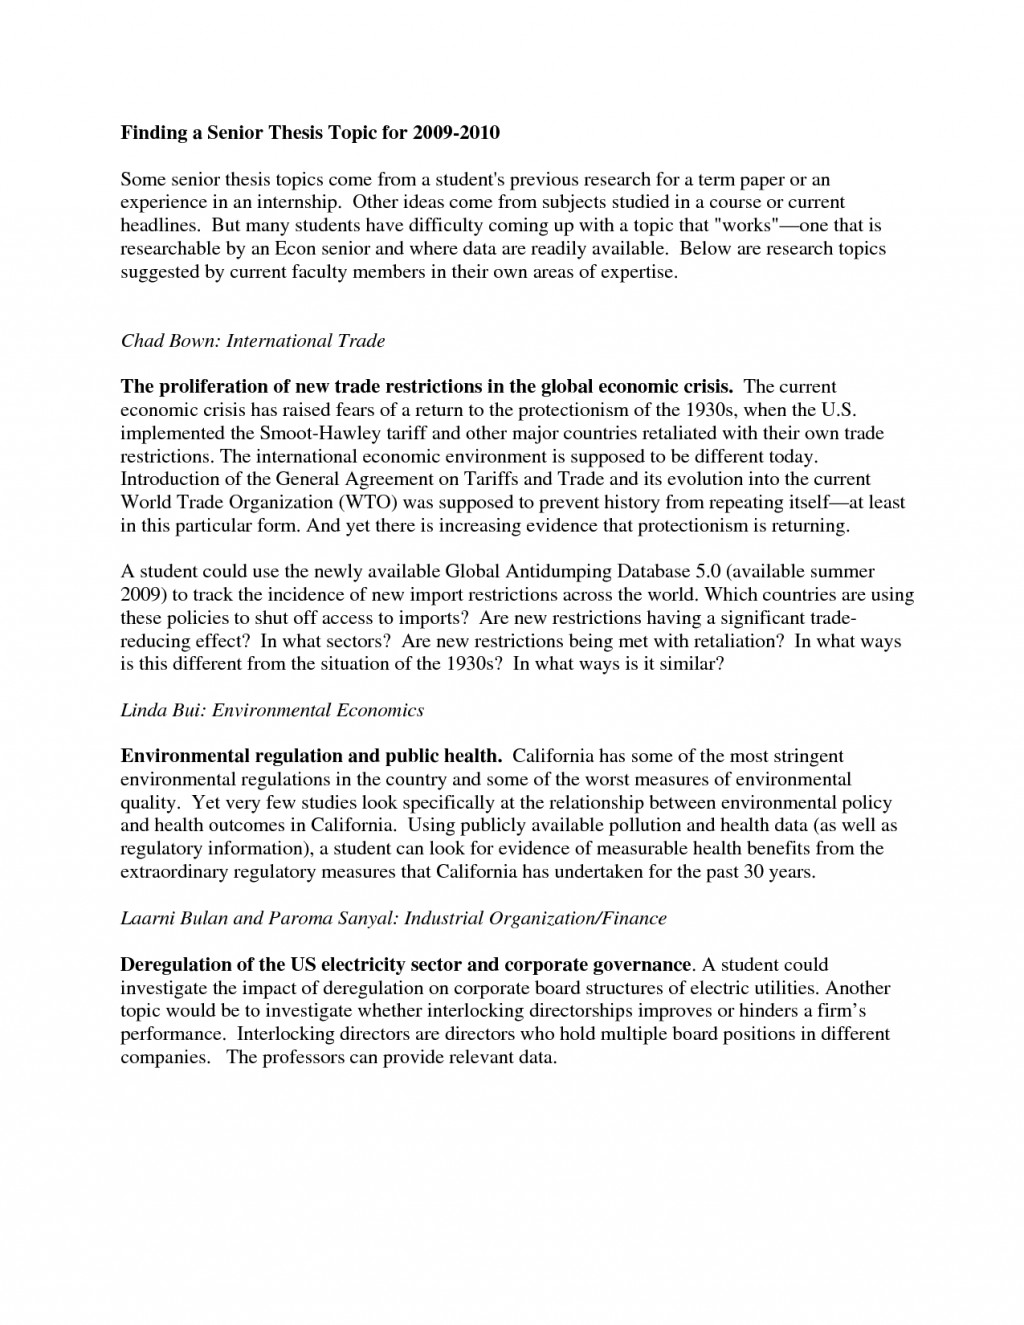 018 Interesting Research Paper Topic Ideas High School 384737 Dreaded For Highschool Students College Large